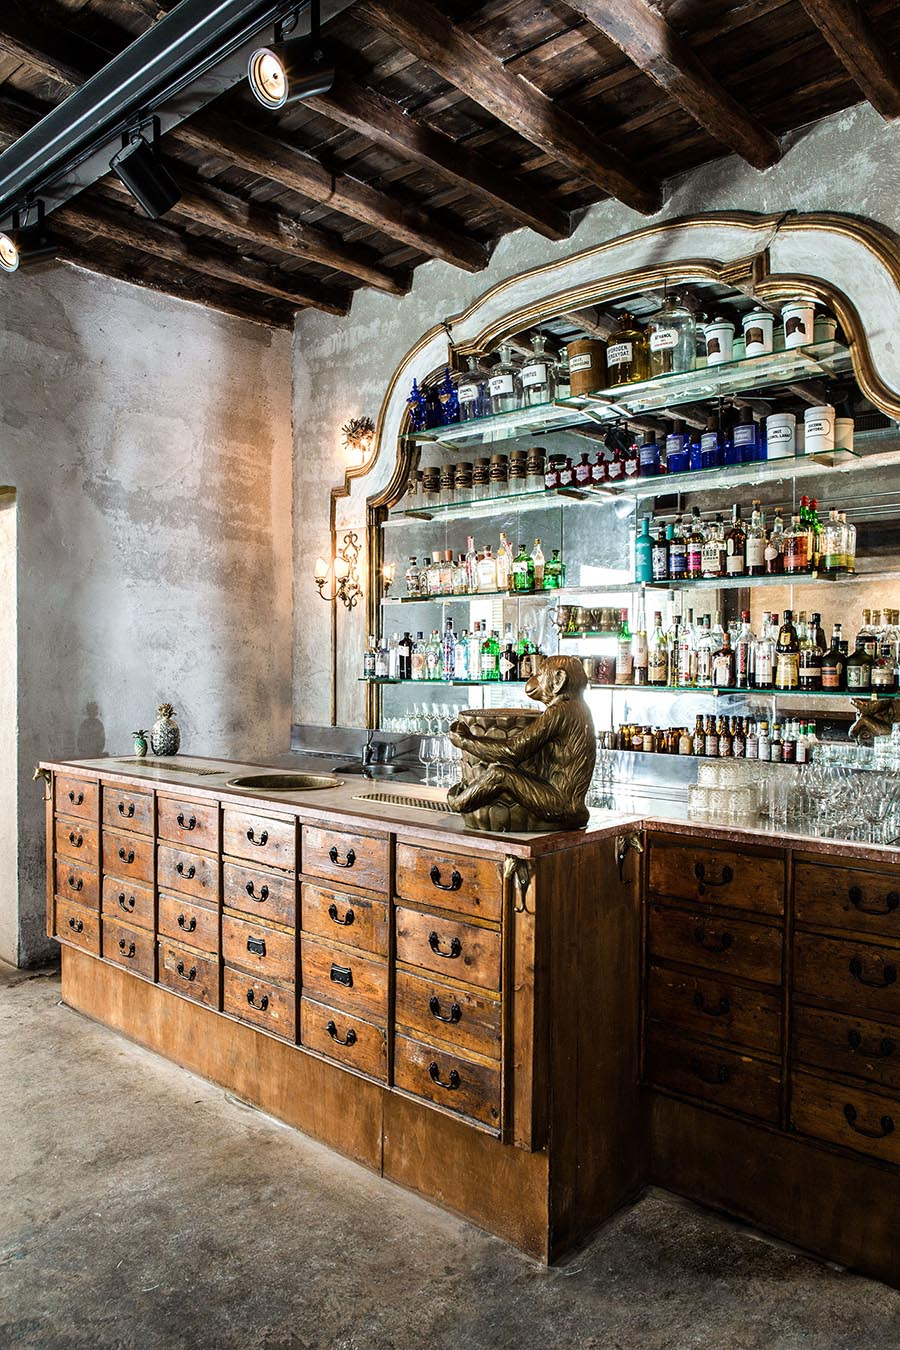 sacripante gallery and bar rome italy the cool hunter the cool